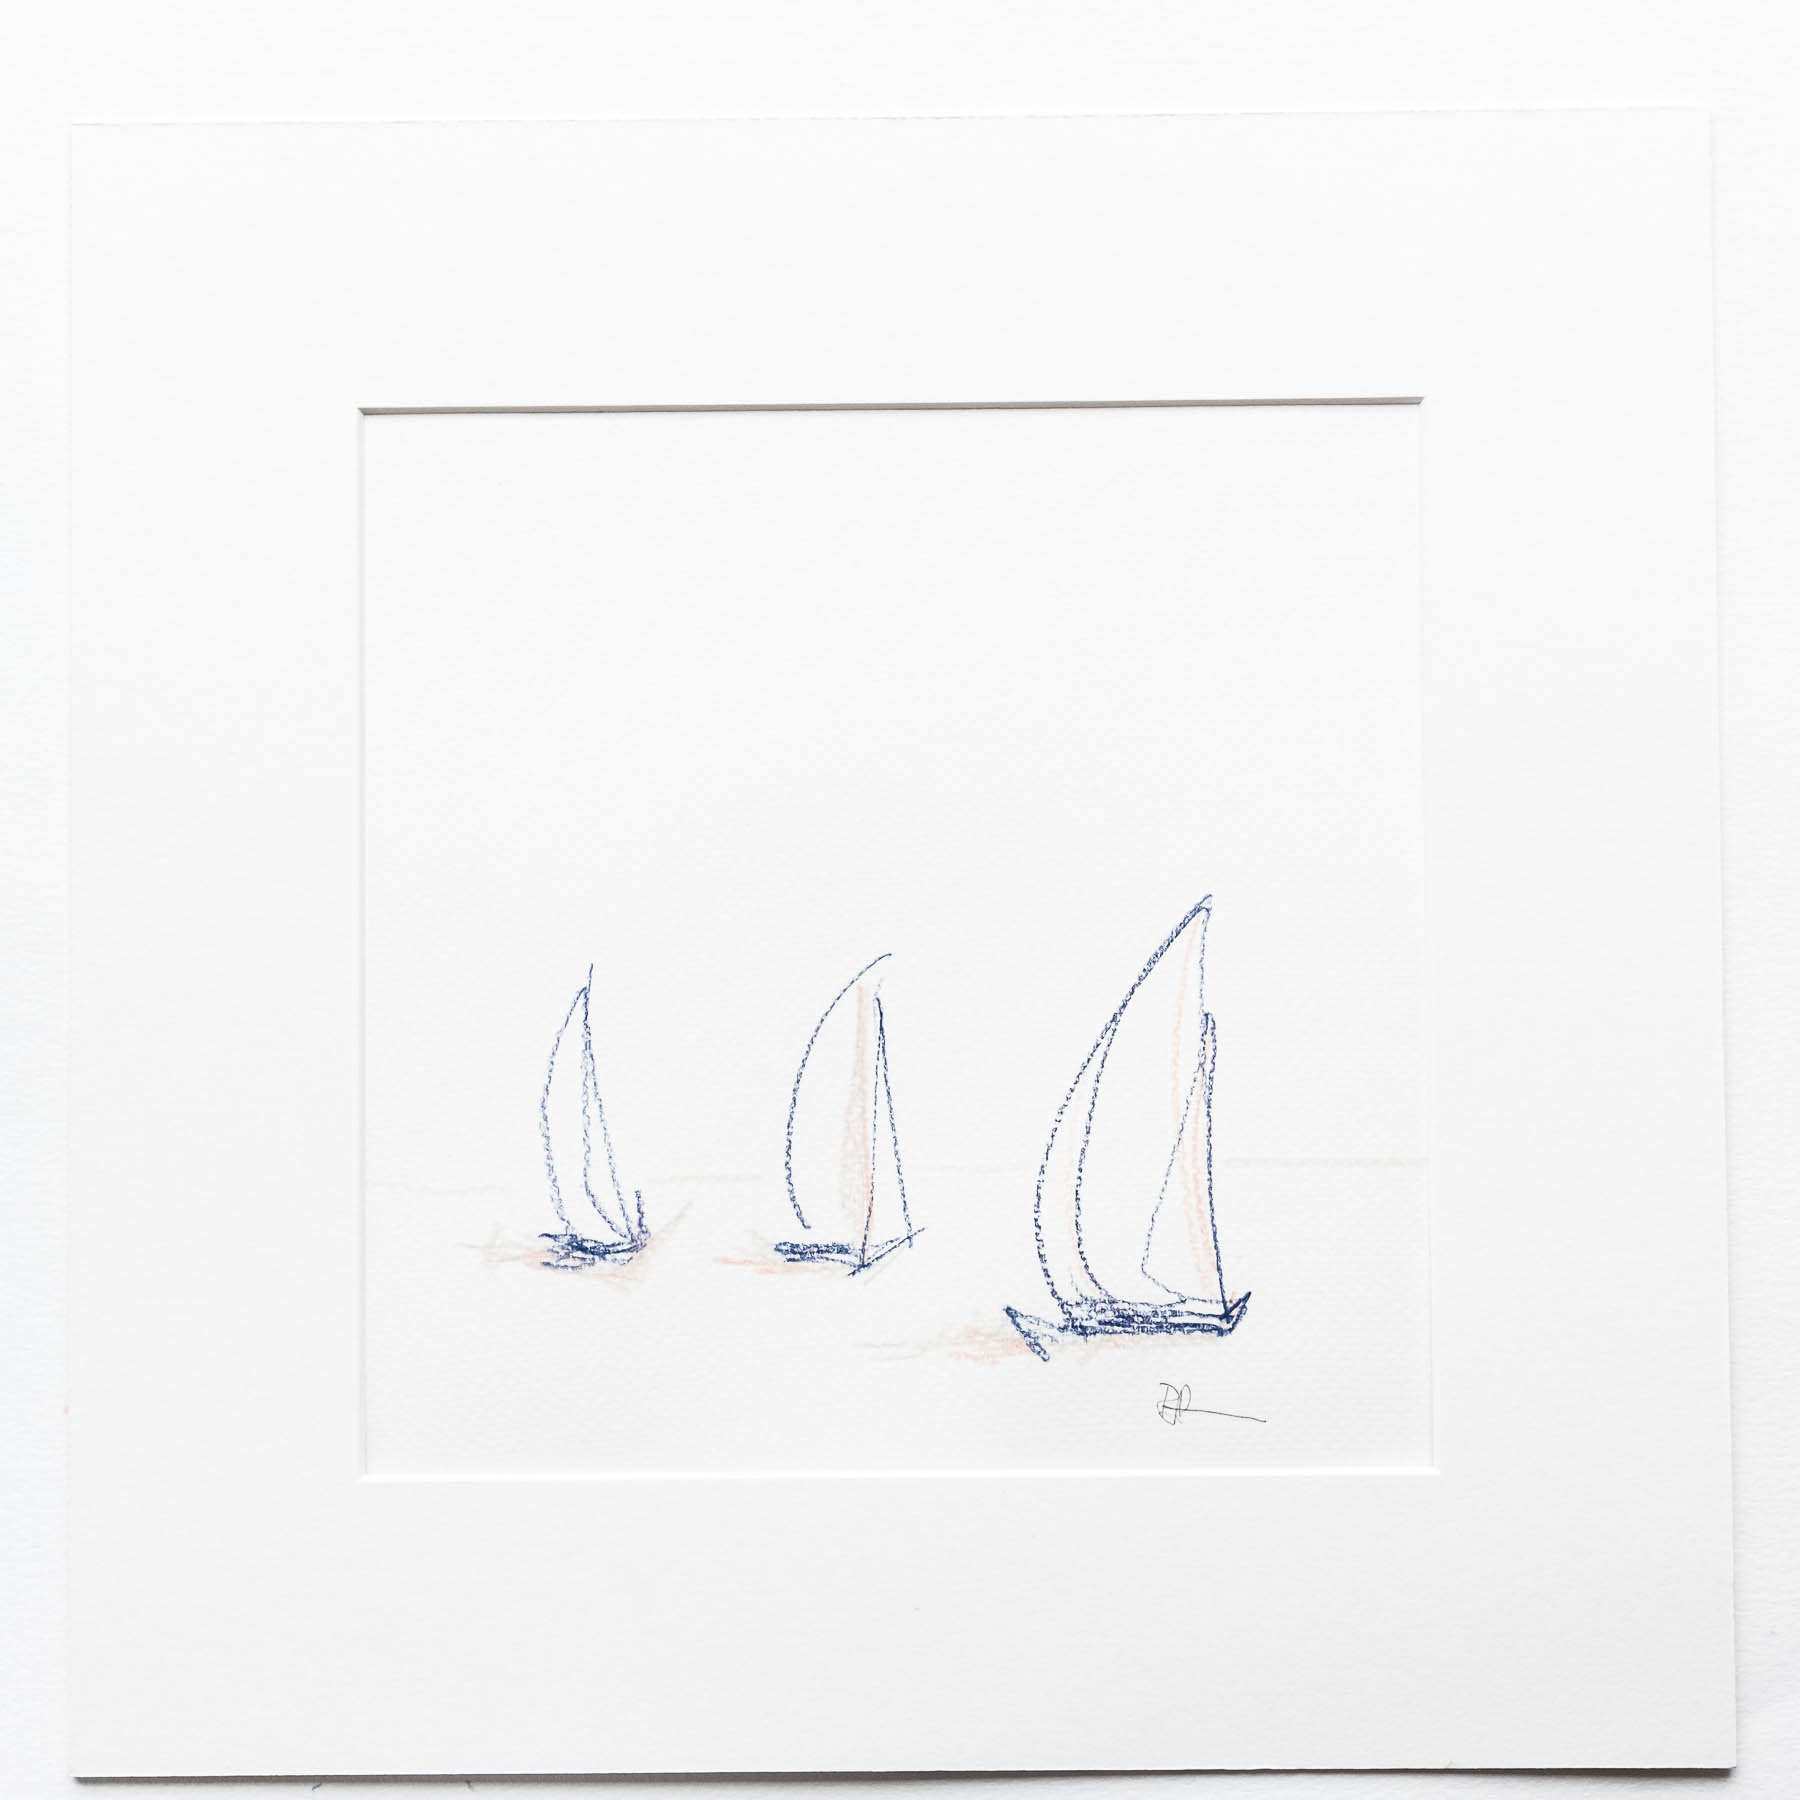 Limited palette coloured pencil drawing of three yachts. By Rebecca Portsmouth of Margate Editions. Inspired by a Margate Yacht Club Bank Holiday weekend race.